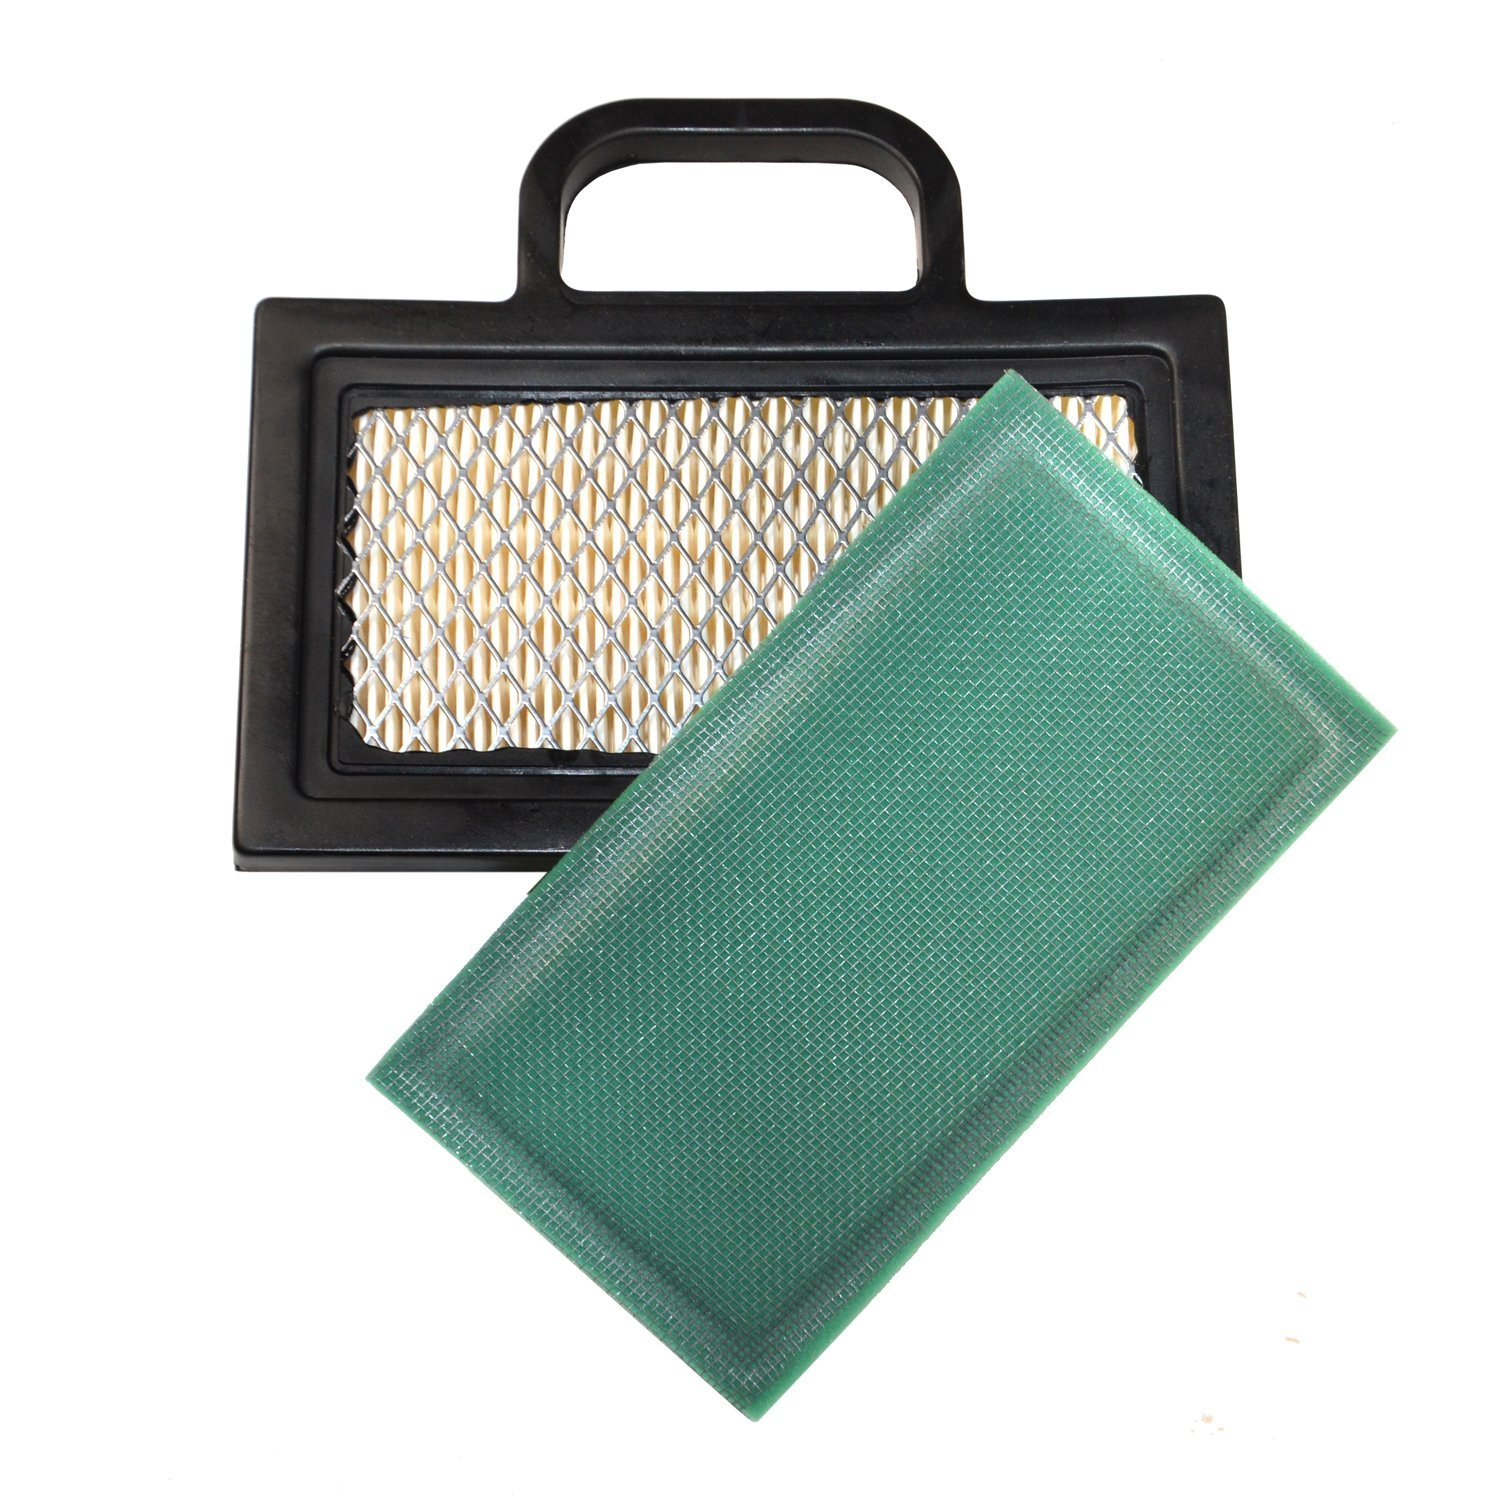 # 33926 4-Pack HQRP Air Filter Kit for Craftsman GT5000 GT3000 DYS4500 YS4500